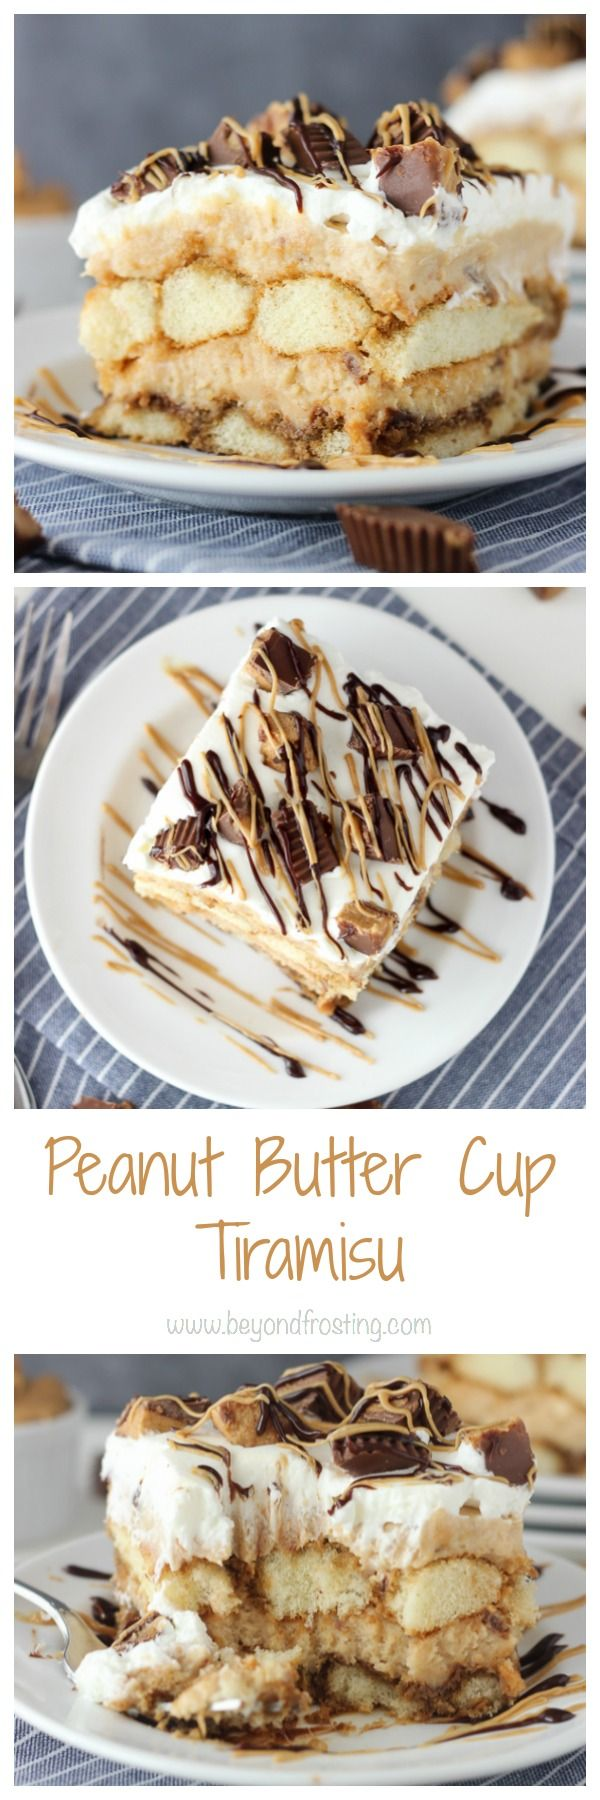 You'll need an extra big fork for this Peanut Butter Cup Tiramisu. This dessert is layers of  espresso-soaked ladyfingers, peanut butter mousse and whipped cream. It's also loaded with Reese's Peanut Butter Cups, that's just a bonus